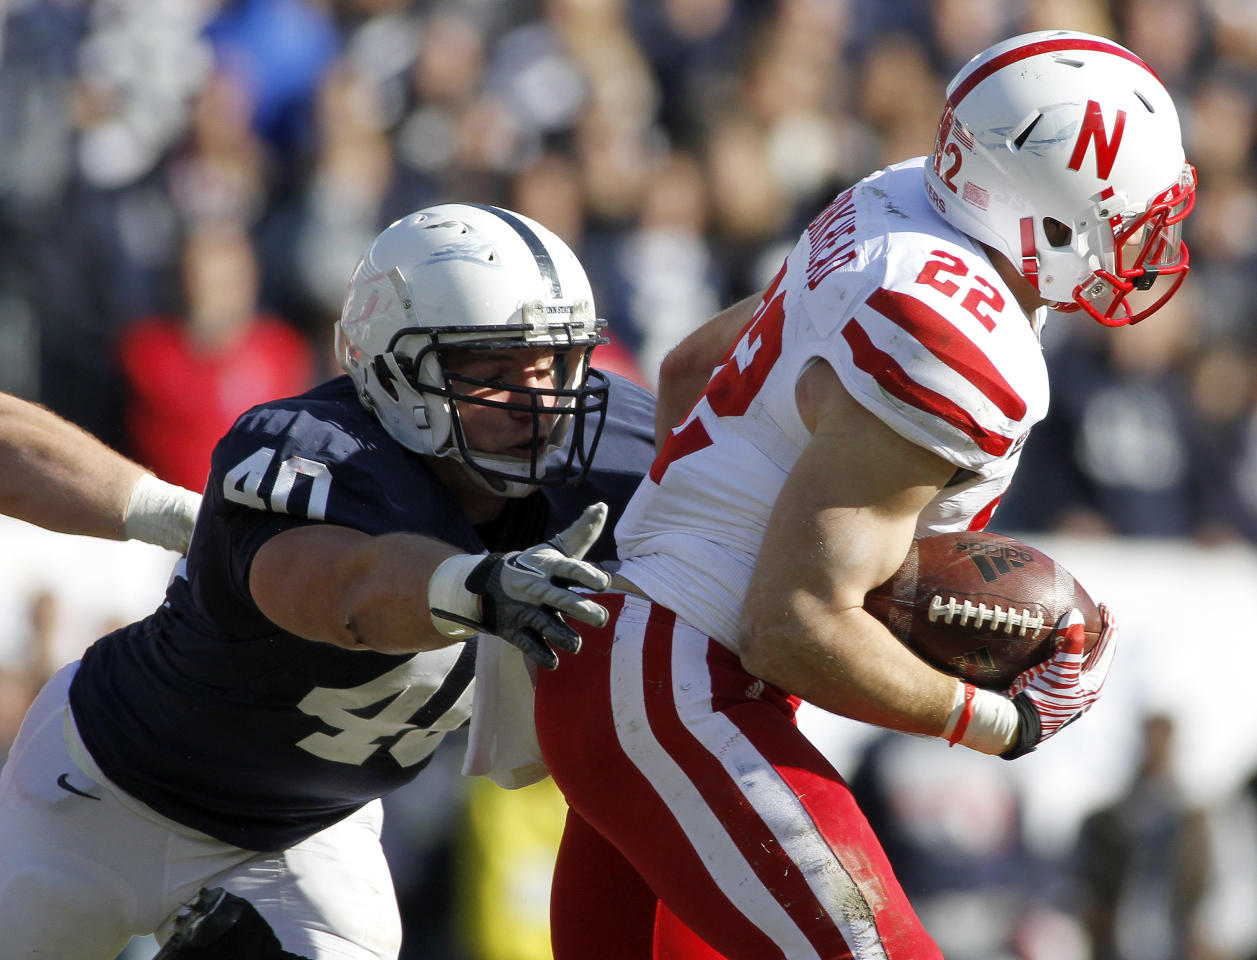 STATE COLLEGE, PA - NOVEMBER 12:  Glenn Carson #40 of the Penn State Nittany Lions tackles Rex Burkhead #22 of the Nebraska Cornhuskers during the game on November 12, 2011 at Beaver Stadium in State College, Pennsylvania.  (Photo by Justin K. Aller/Getty Images)